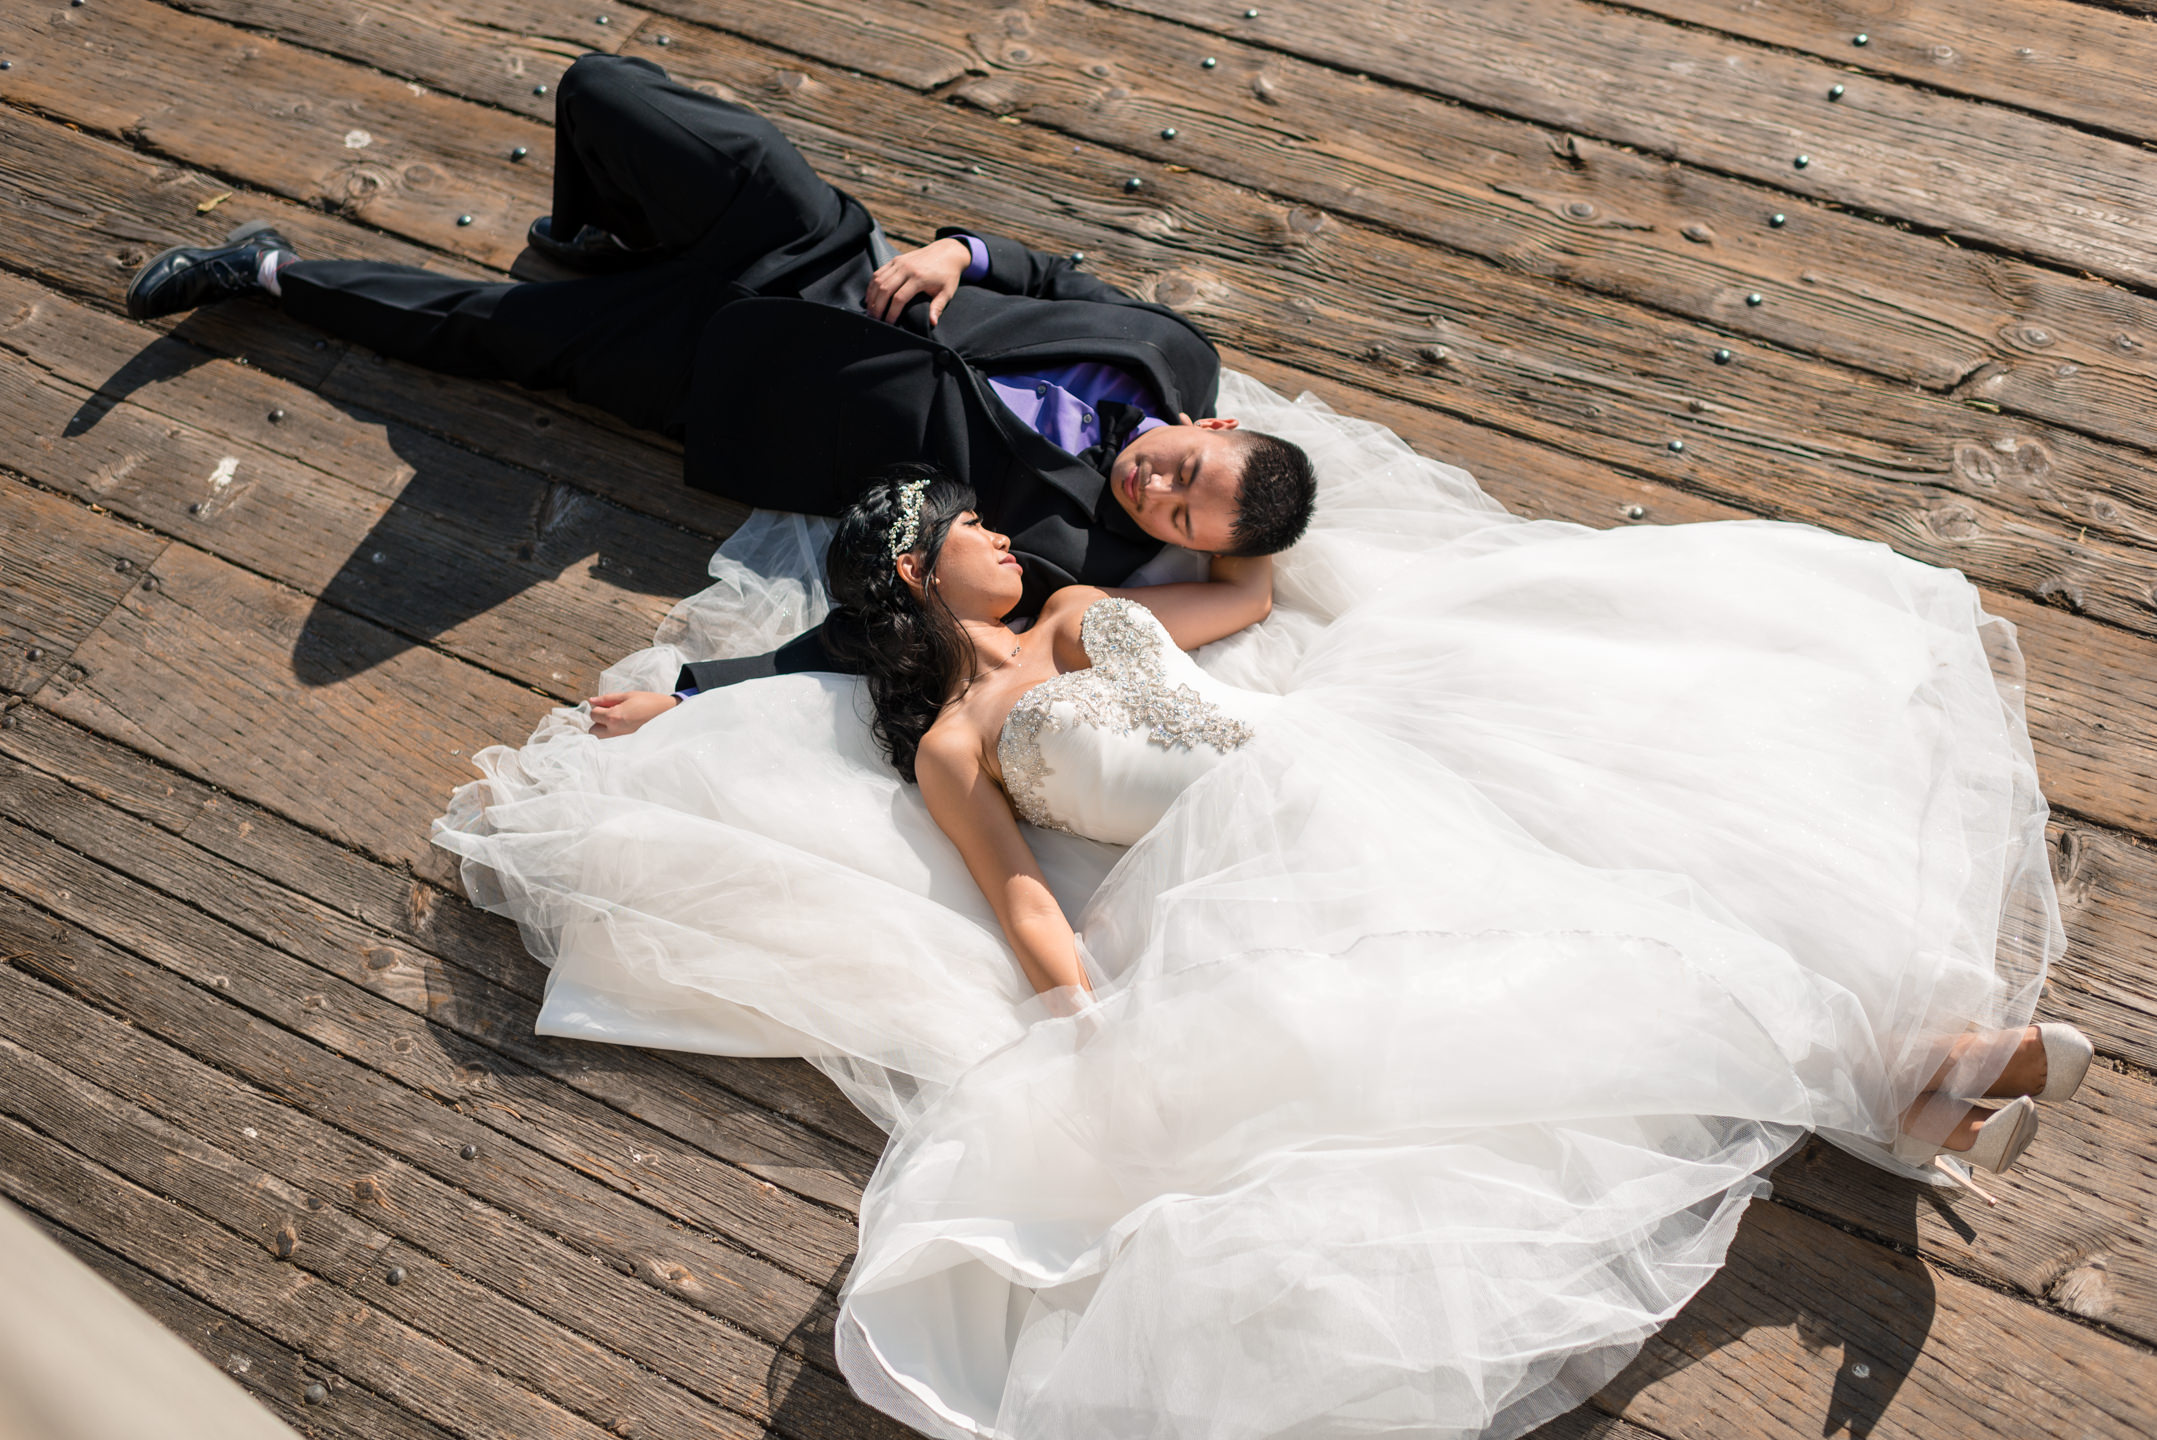 Asian Bride and Groom Romantic Wedding Portrait Seattle Waterfro